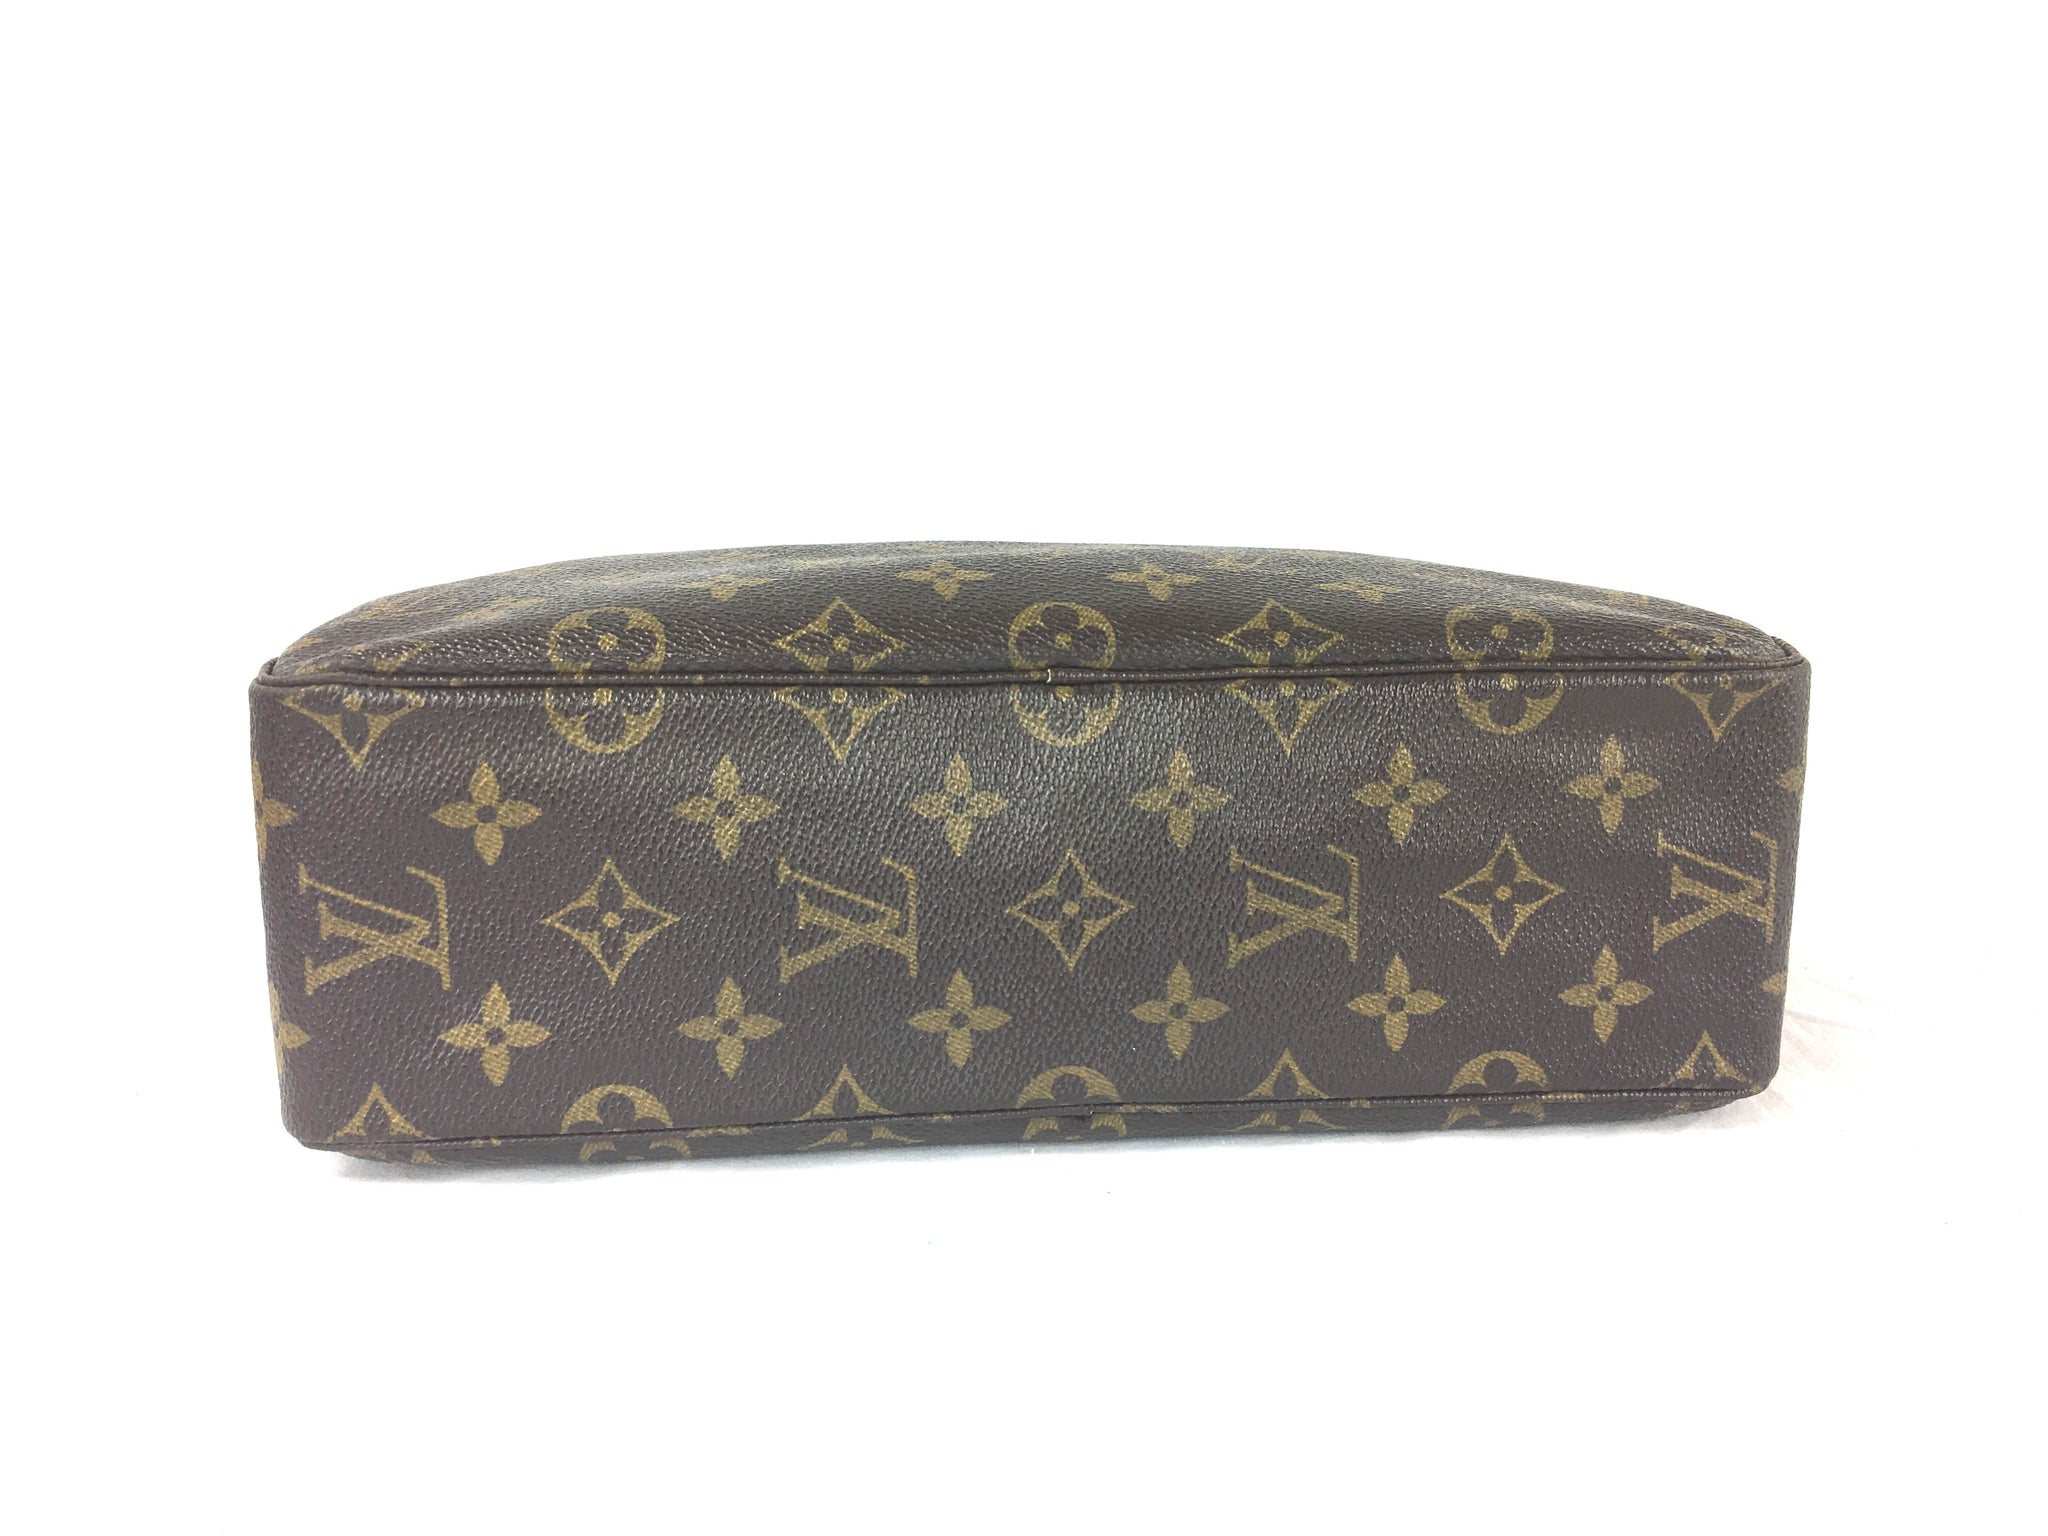 LOUIS VUITTON Cosmetic Bag Clutch 28